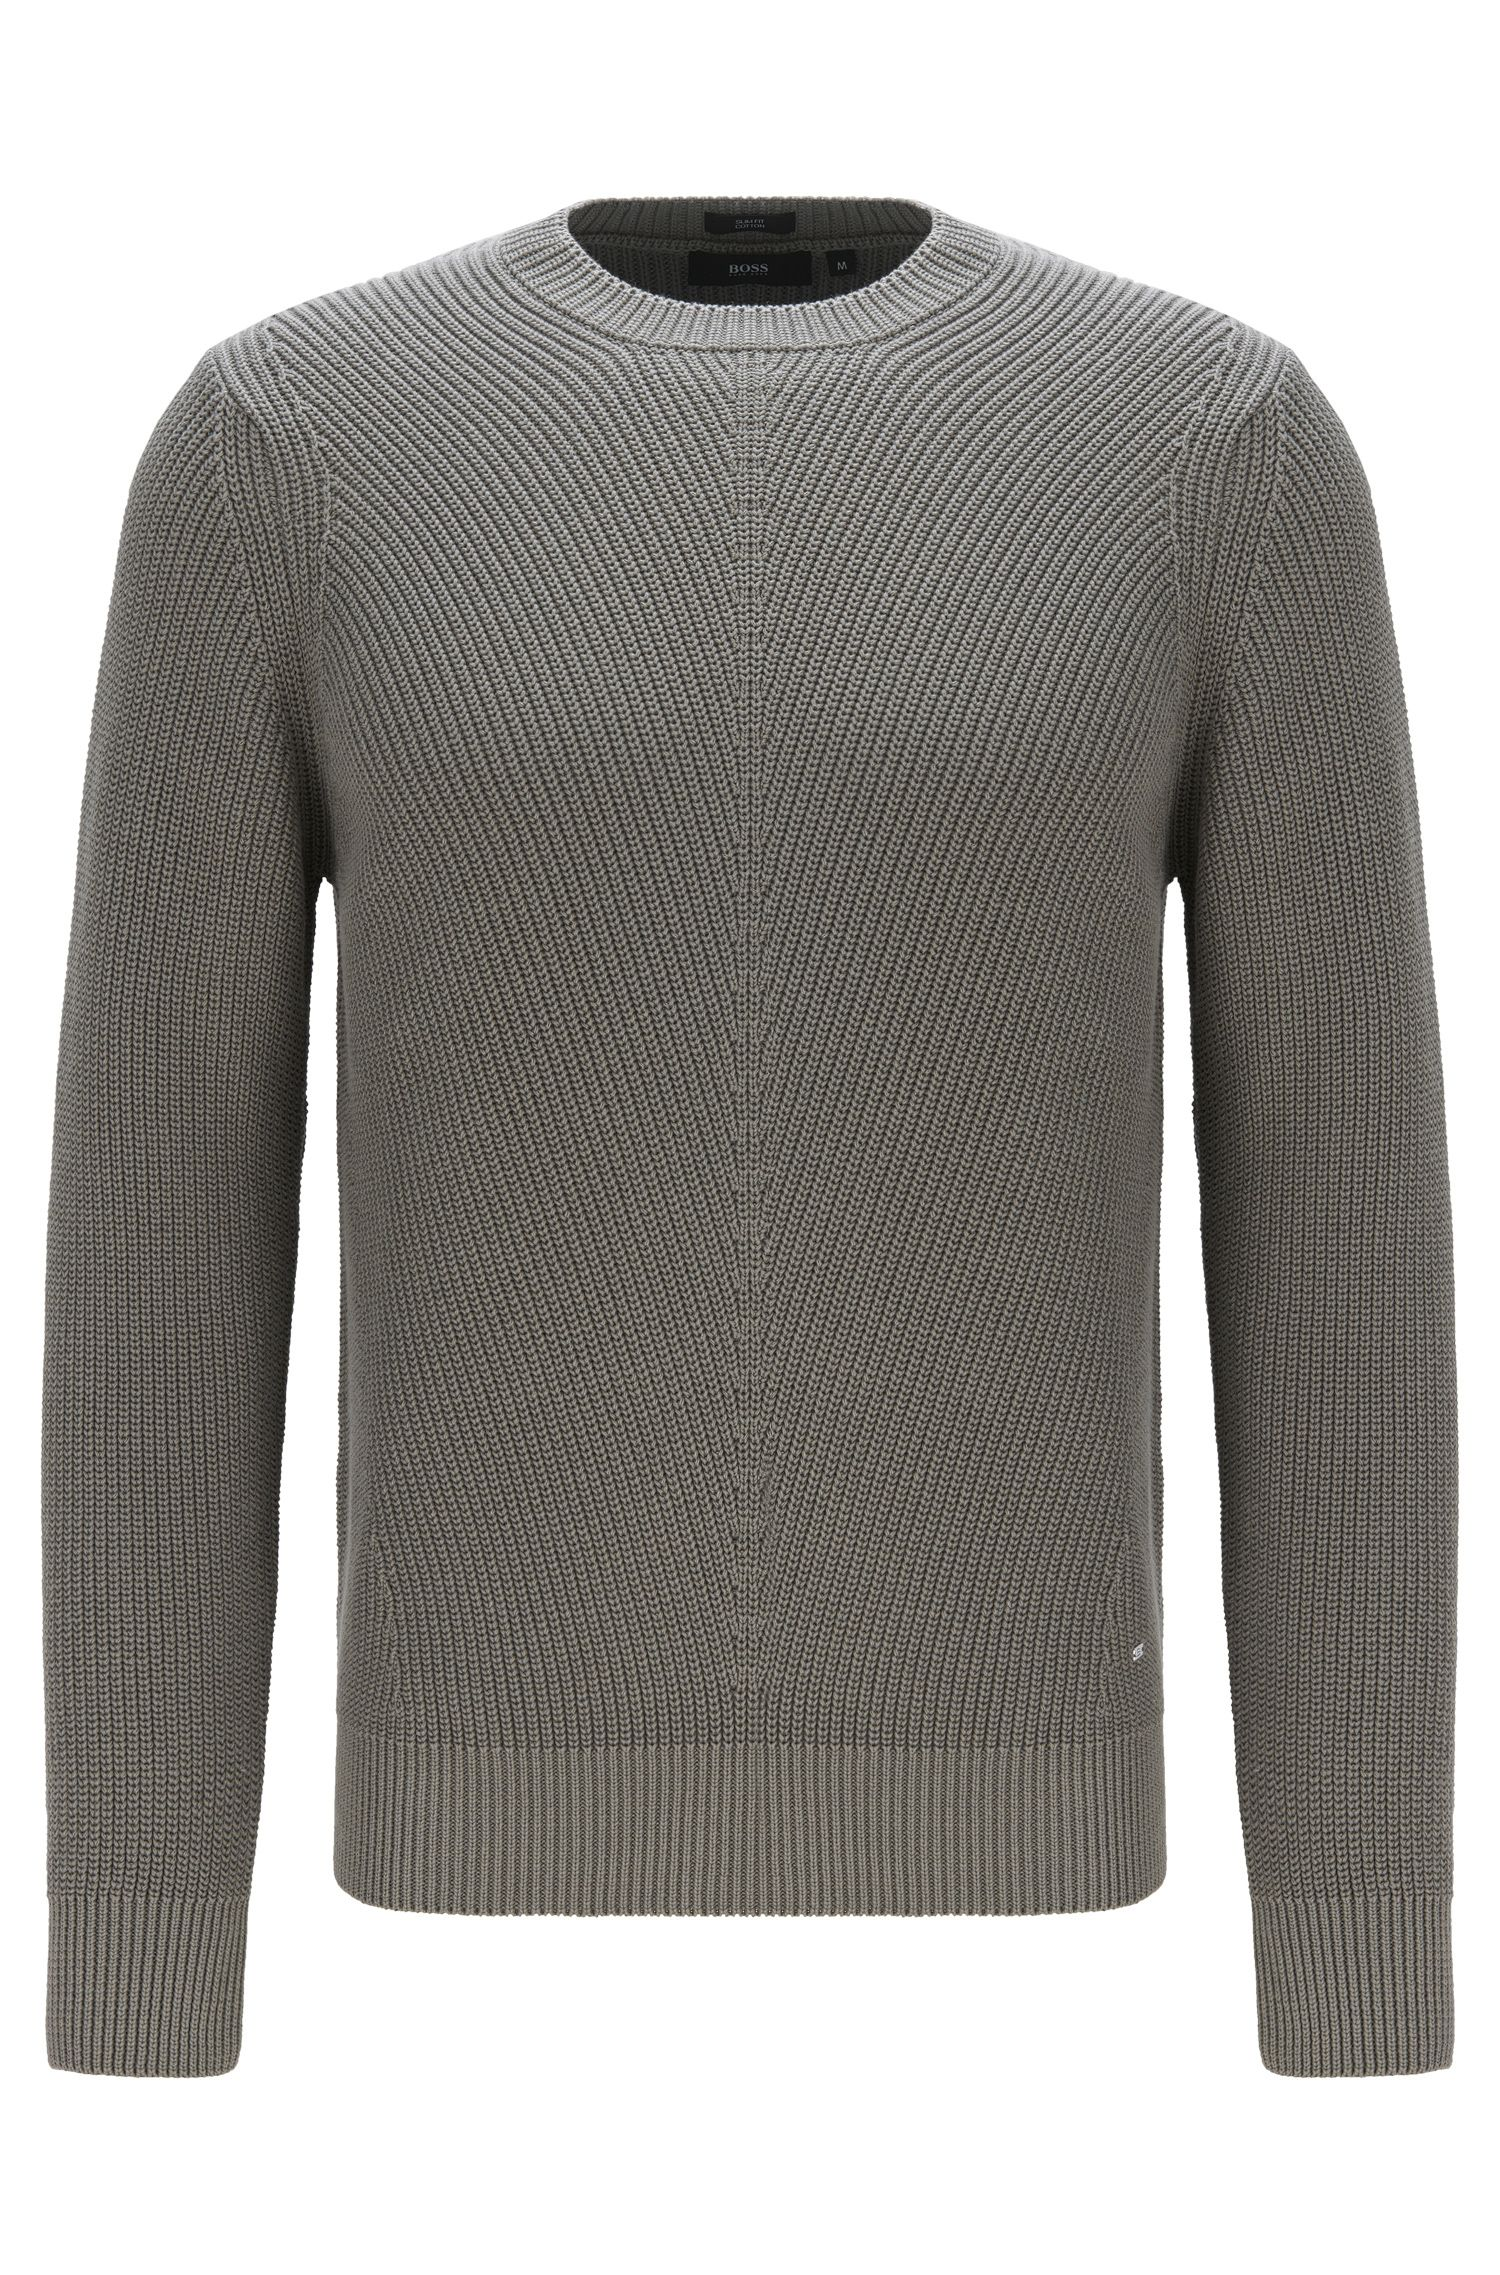 Plain-coloured slim-fit sweater in cotton: 'Odrigo'